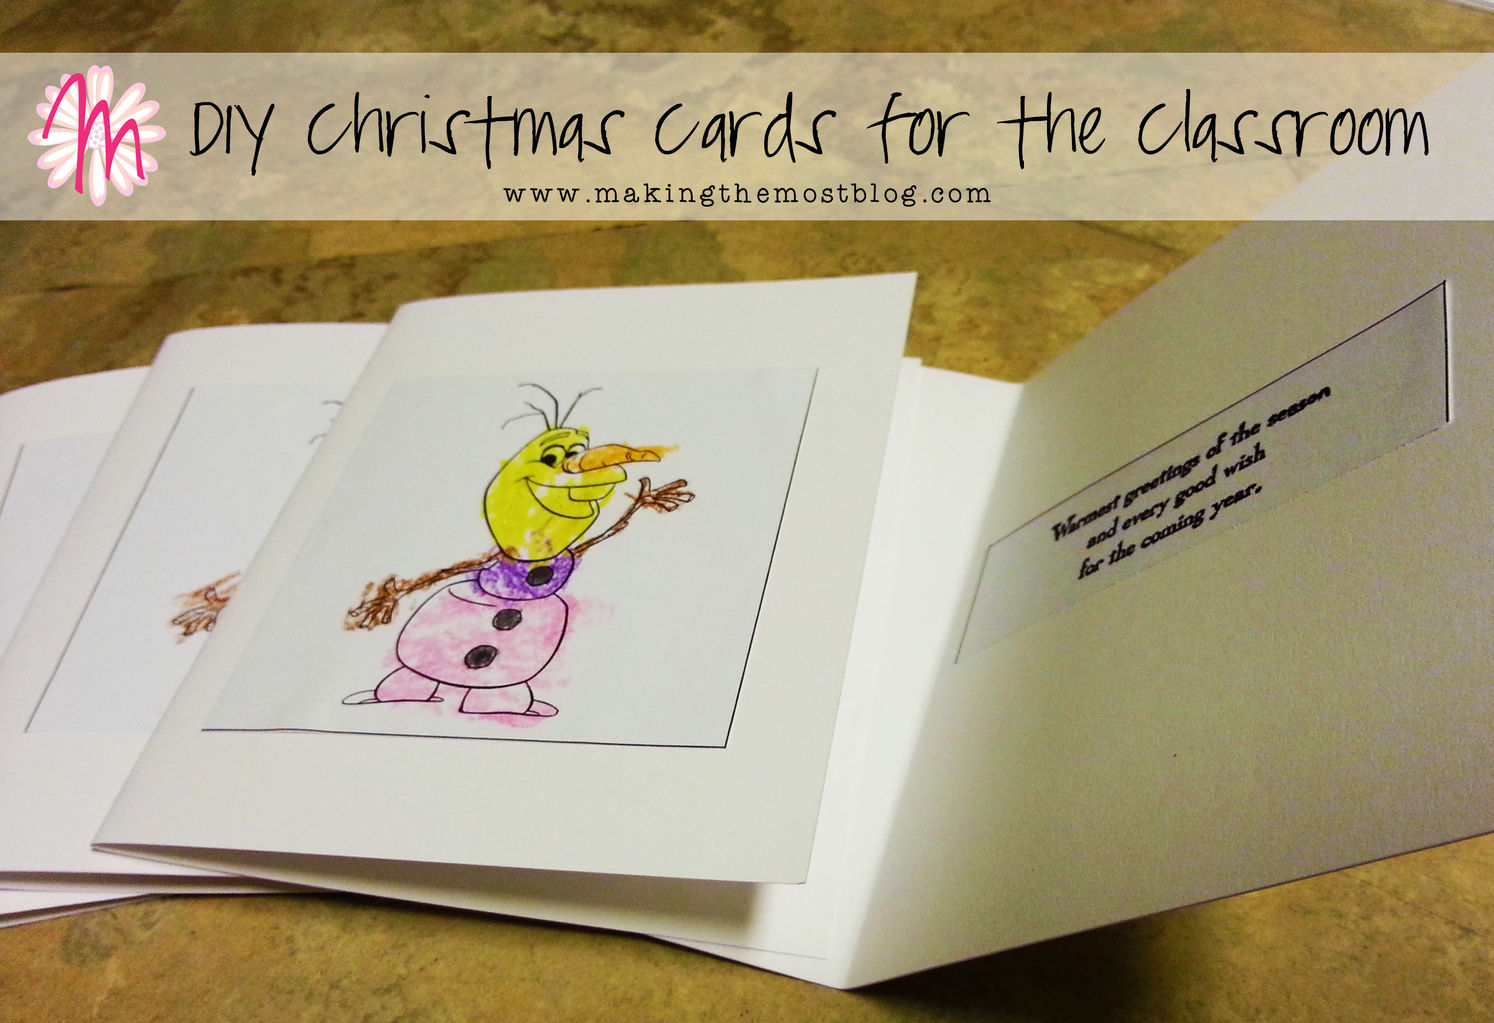 DIY Christmas Cards for the Classroom | Making the Most Blog